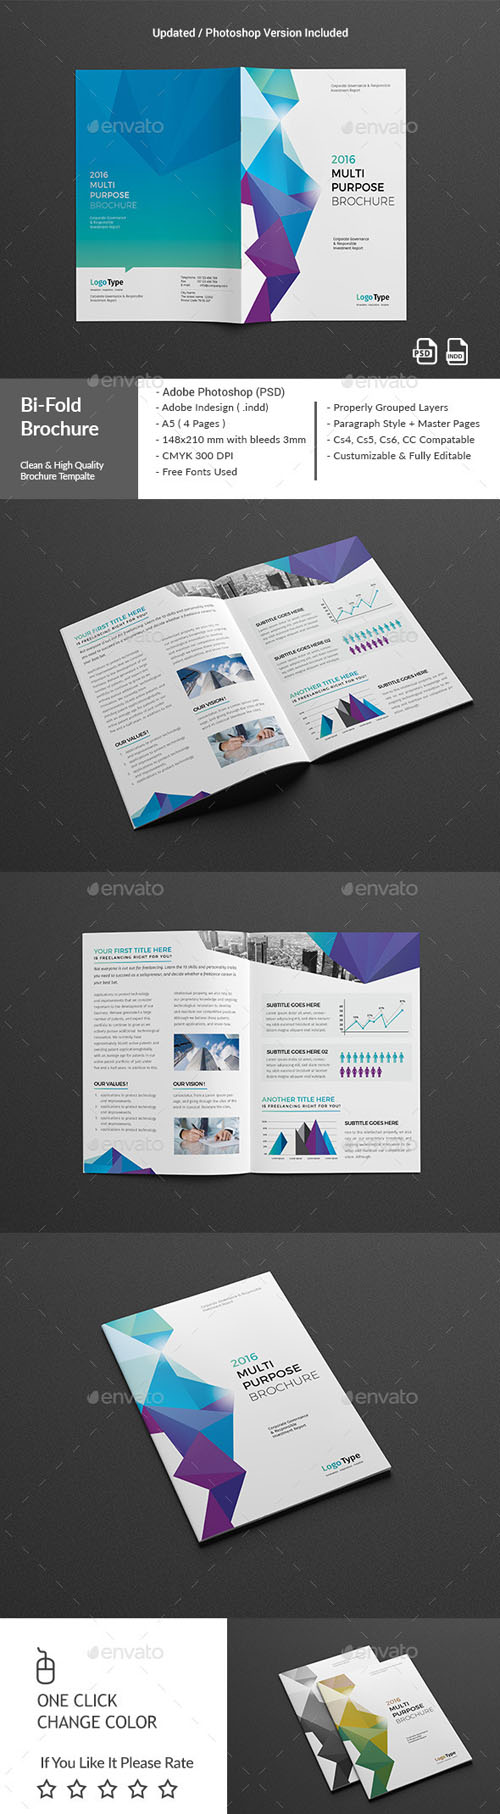 Nitrogfx download unique graphics for creative designers for Bi fold brochure template indesign